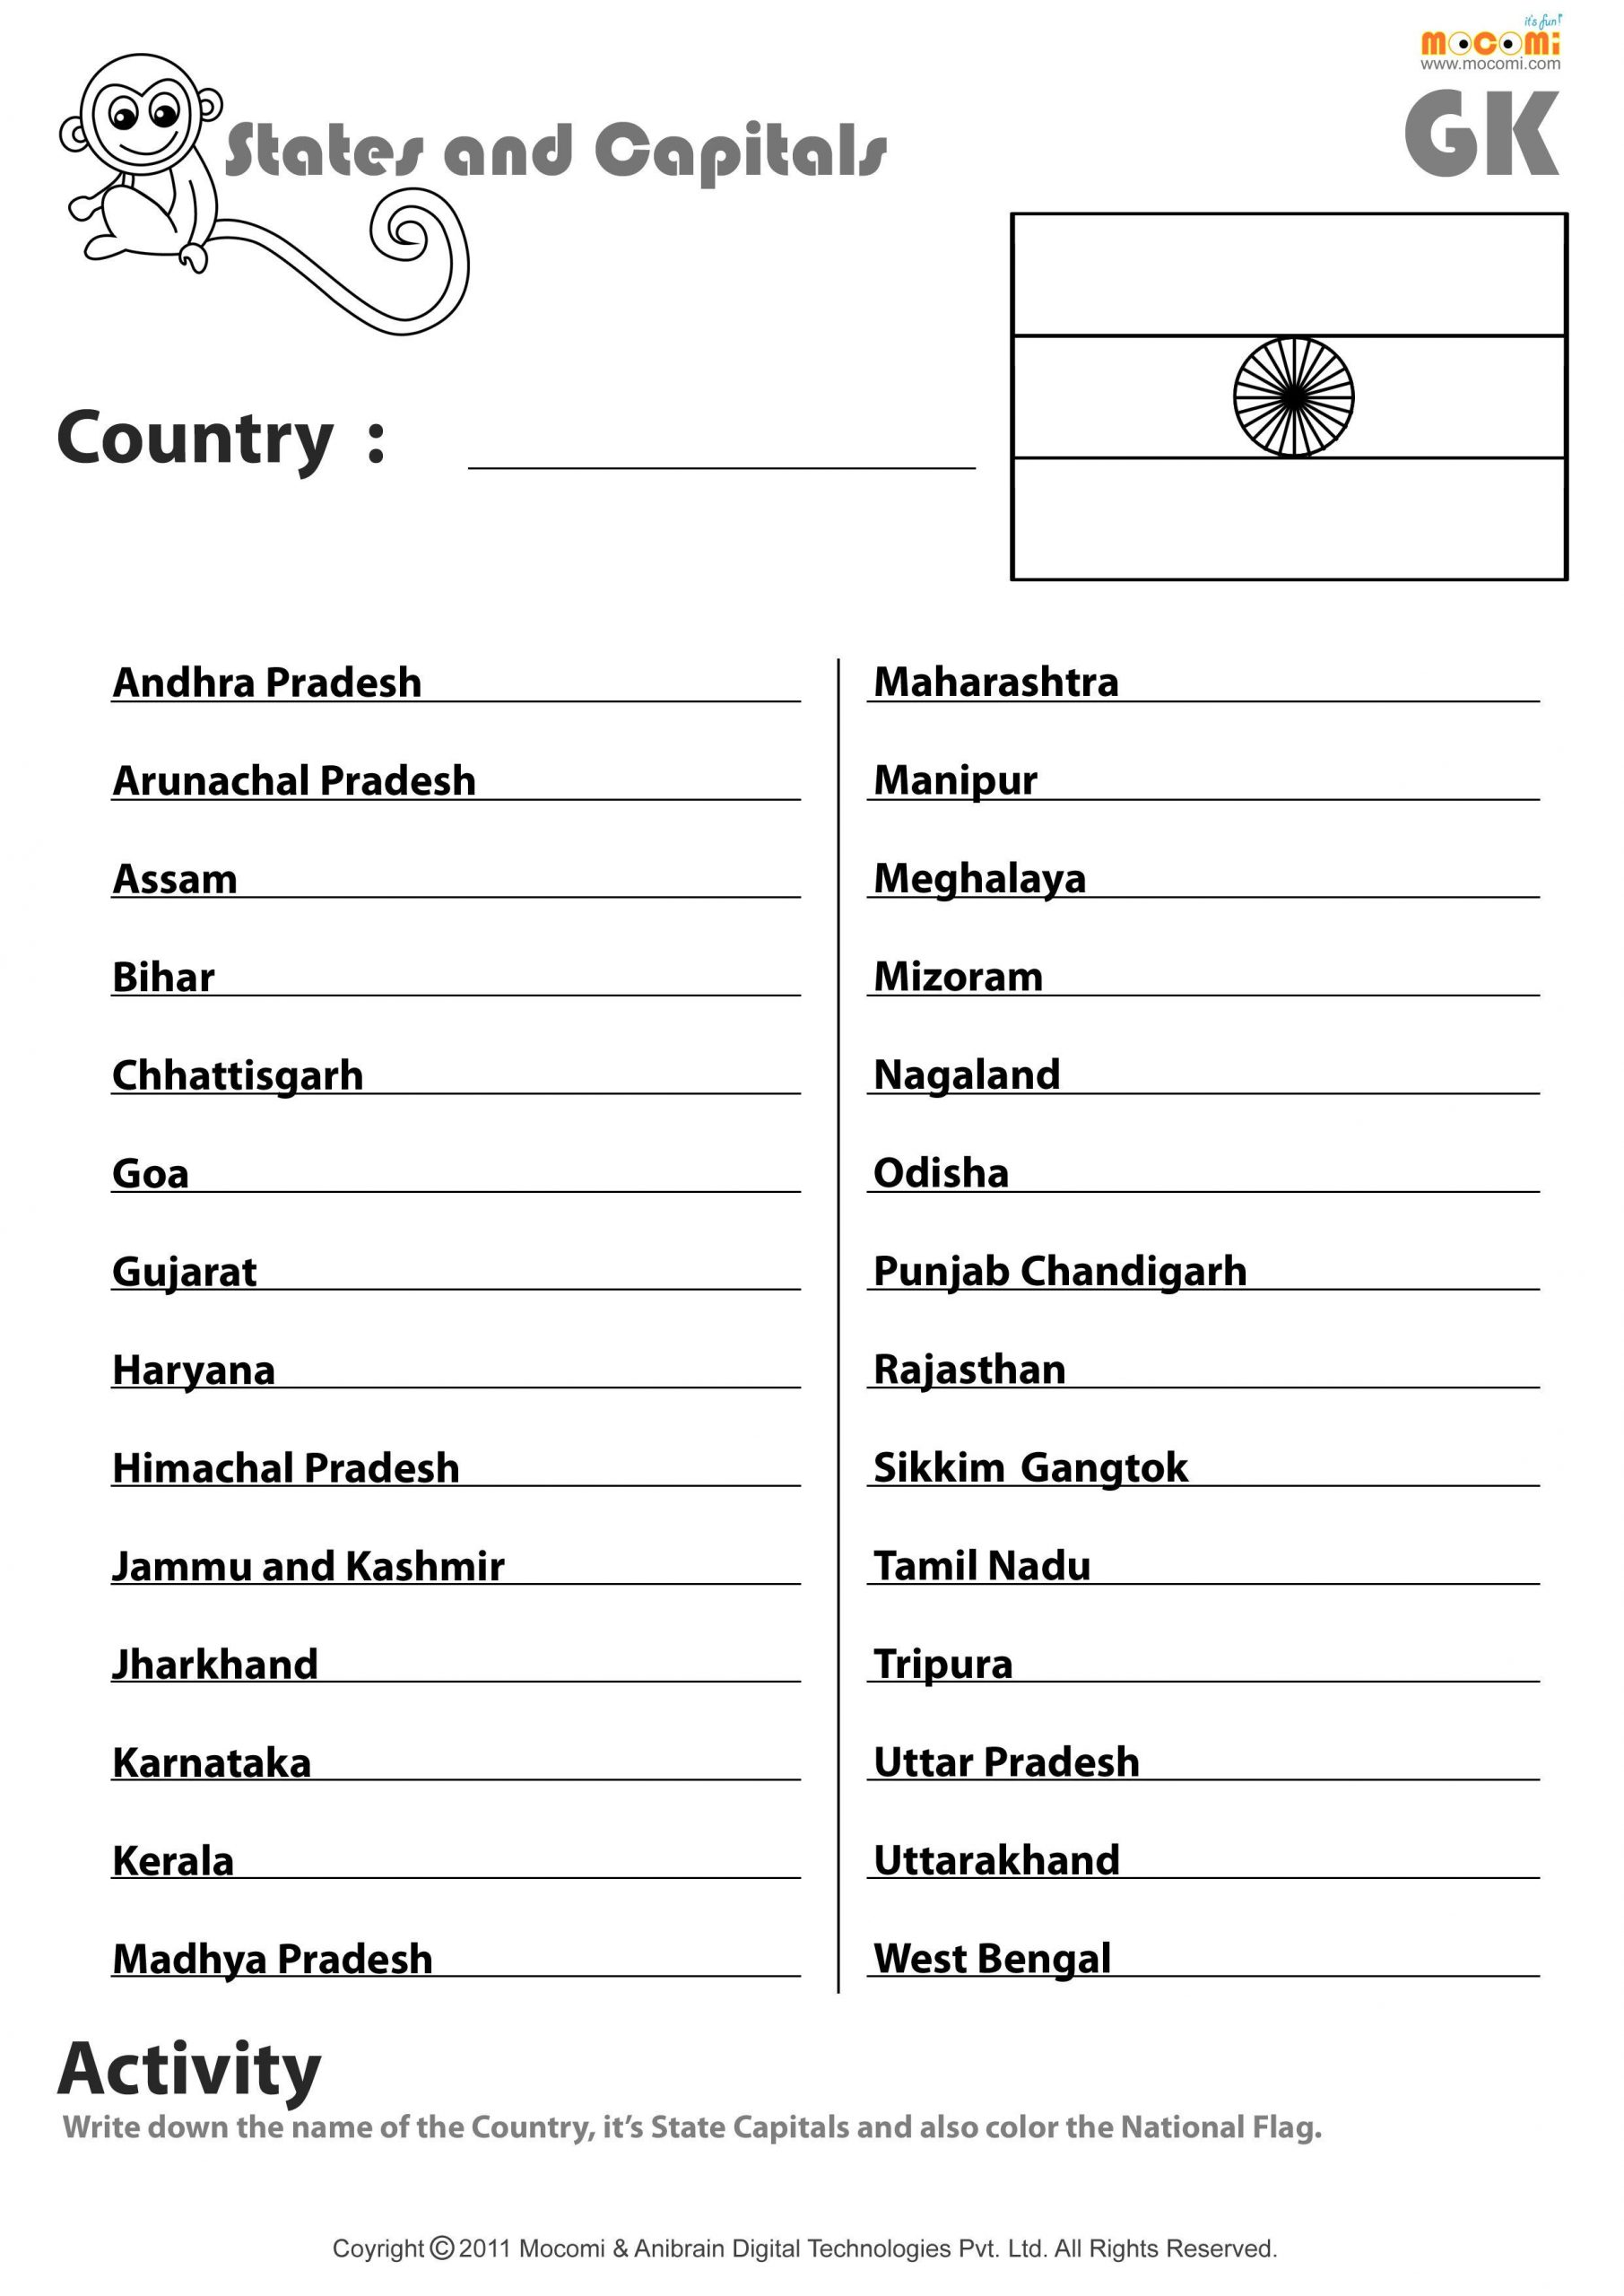 United States Capitals Quiz Printable Identifying State Capitals Worksheet